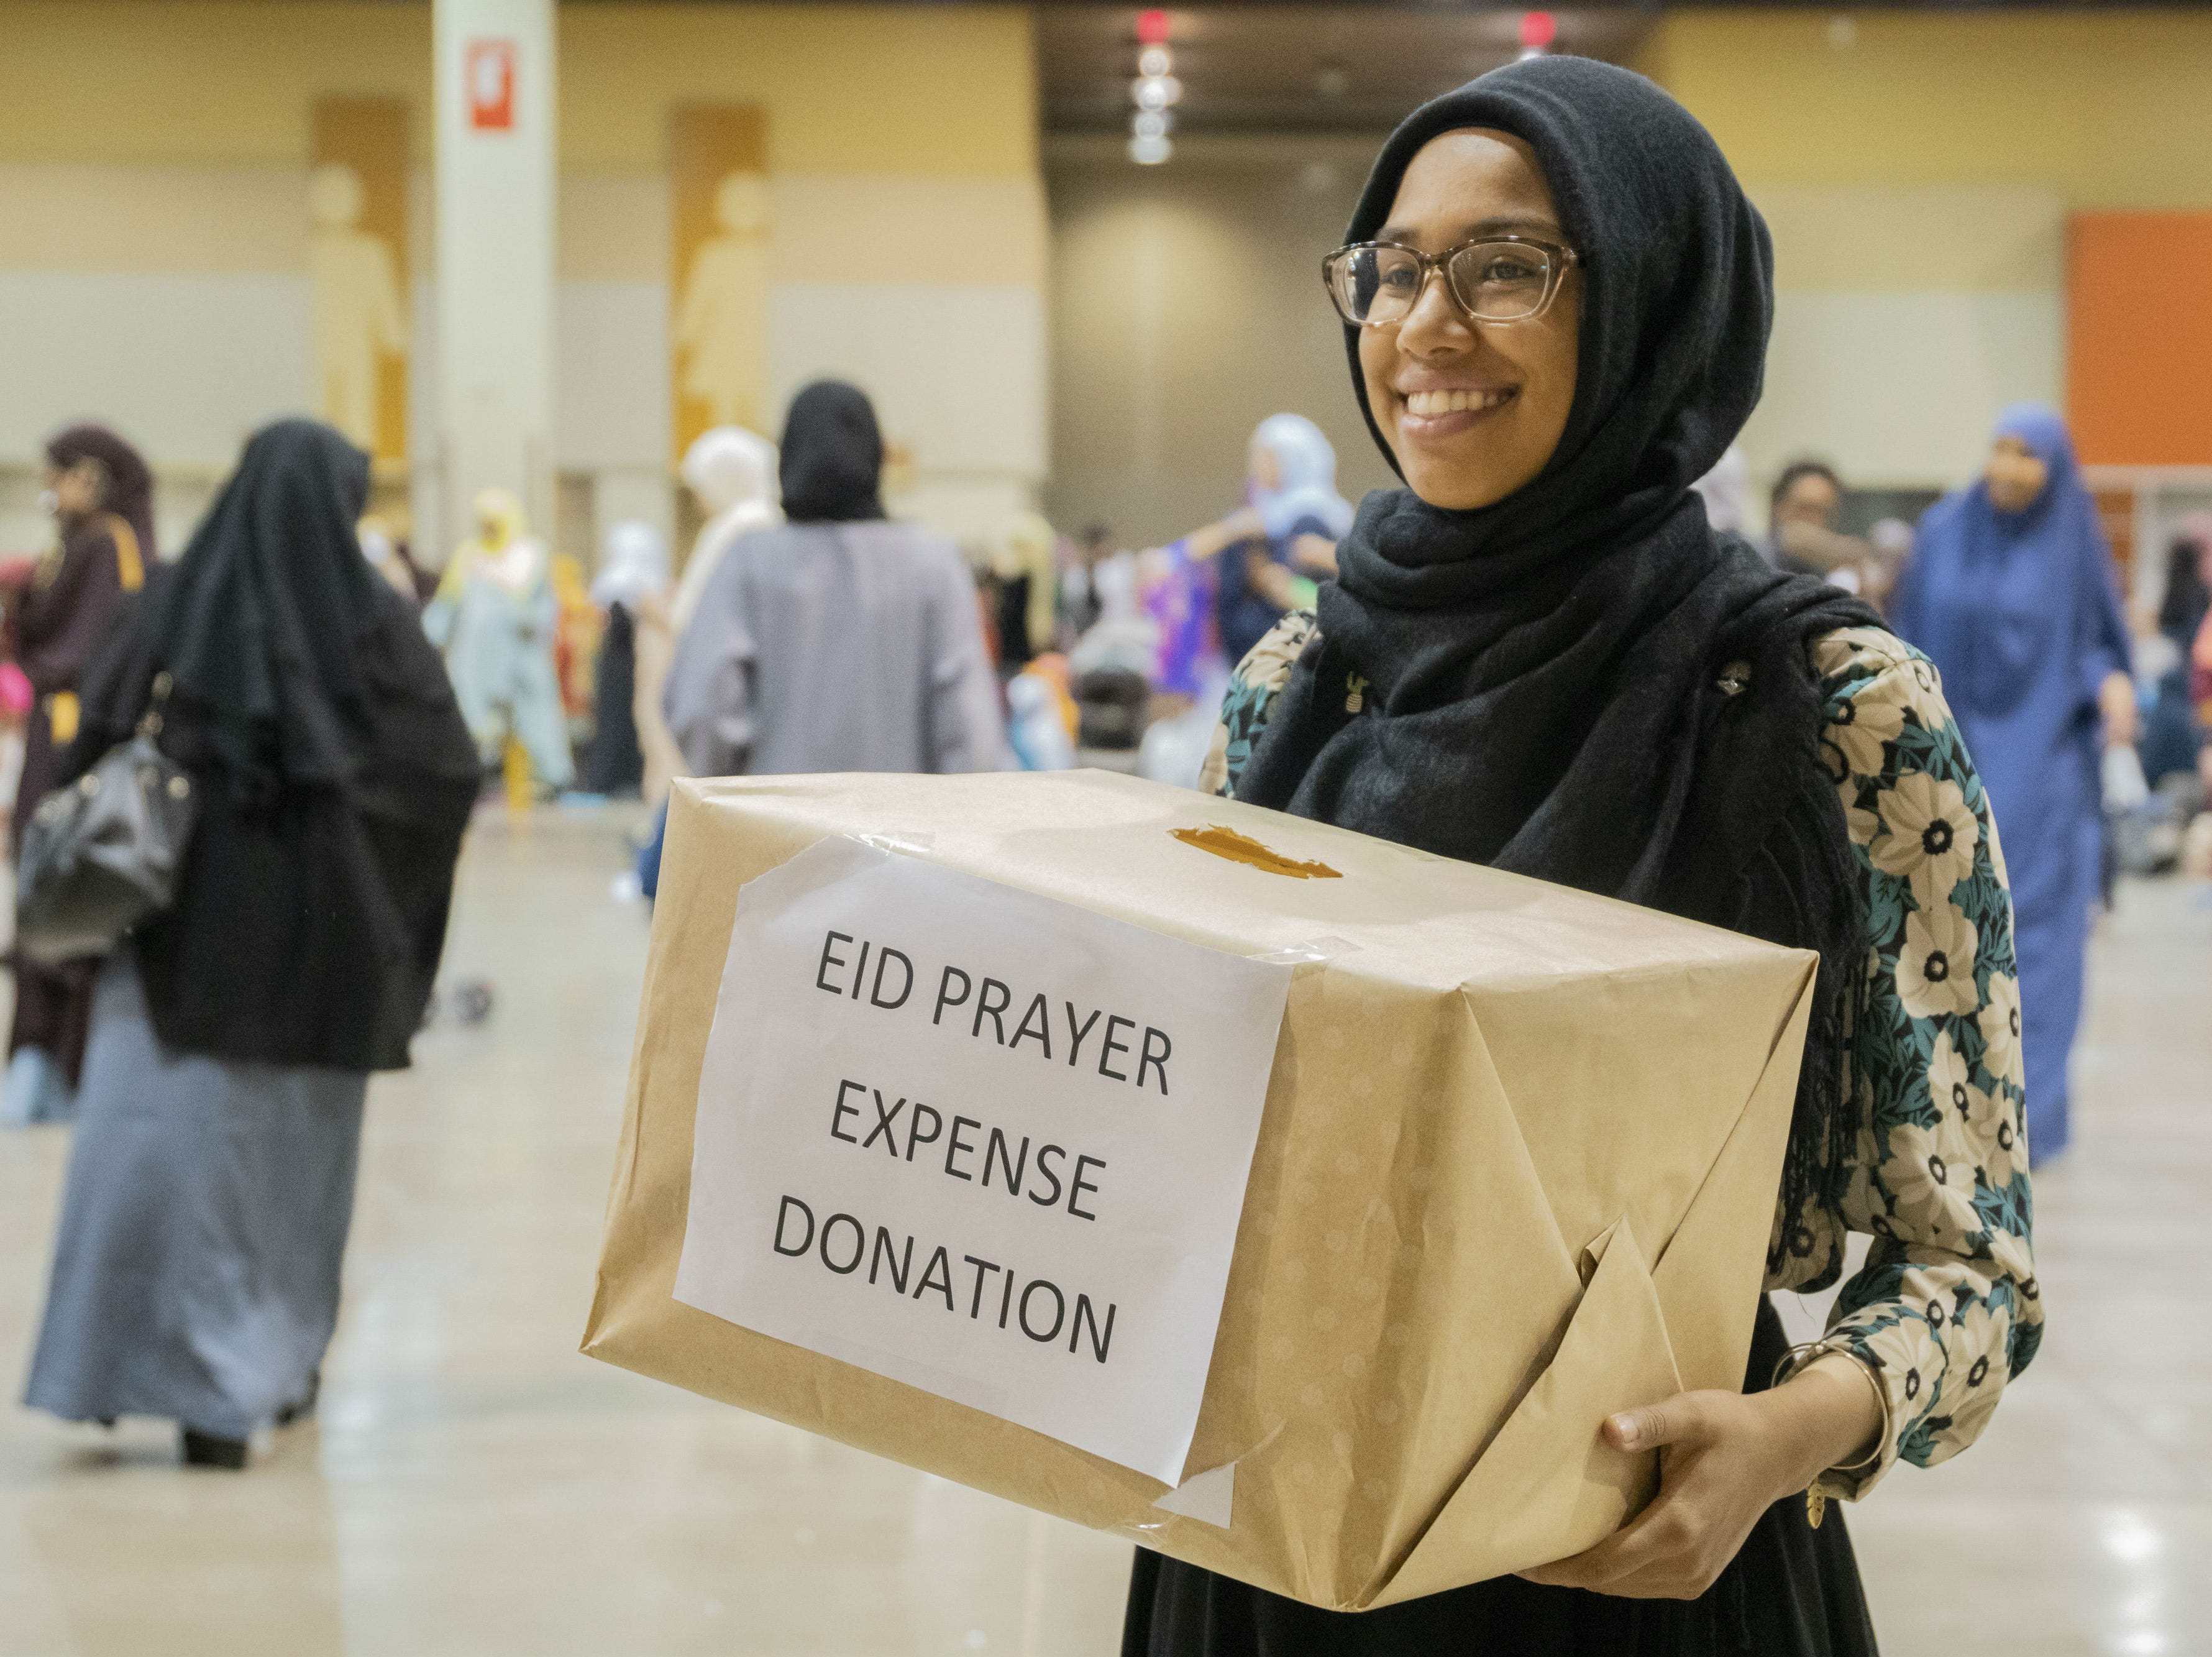 A young woman greets worshippers with a donation box on Aug. 21, 2018, in Phoenix.